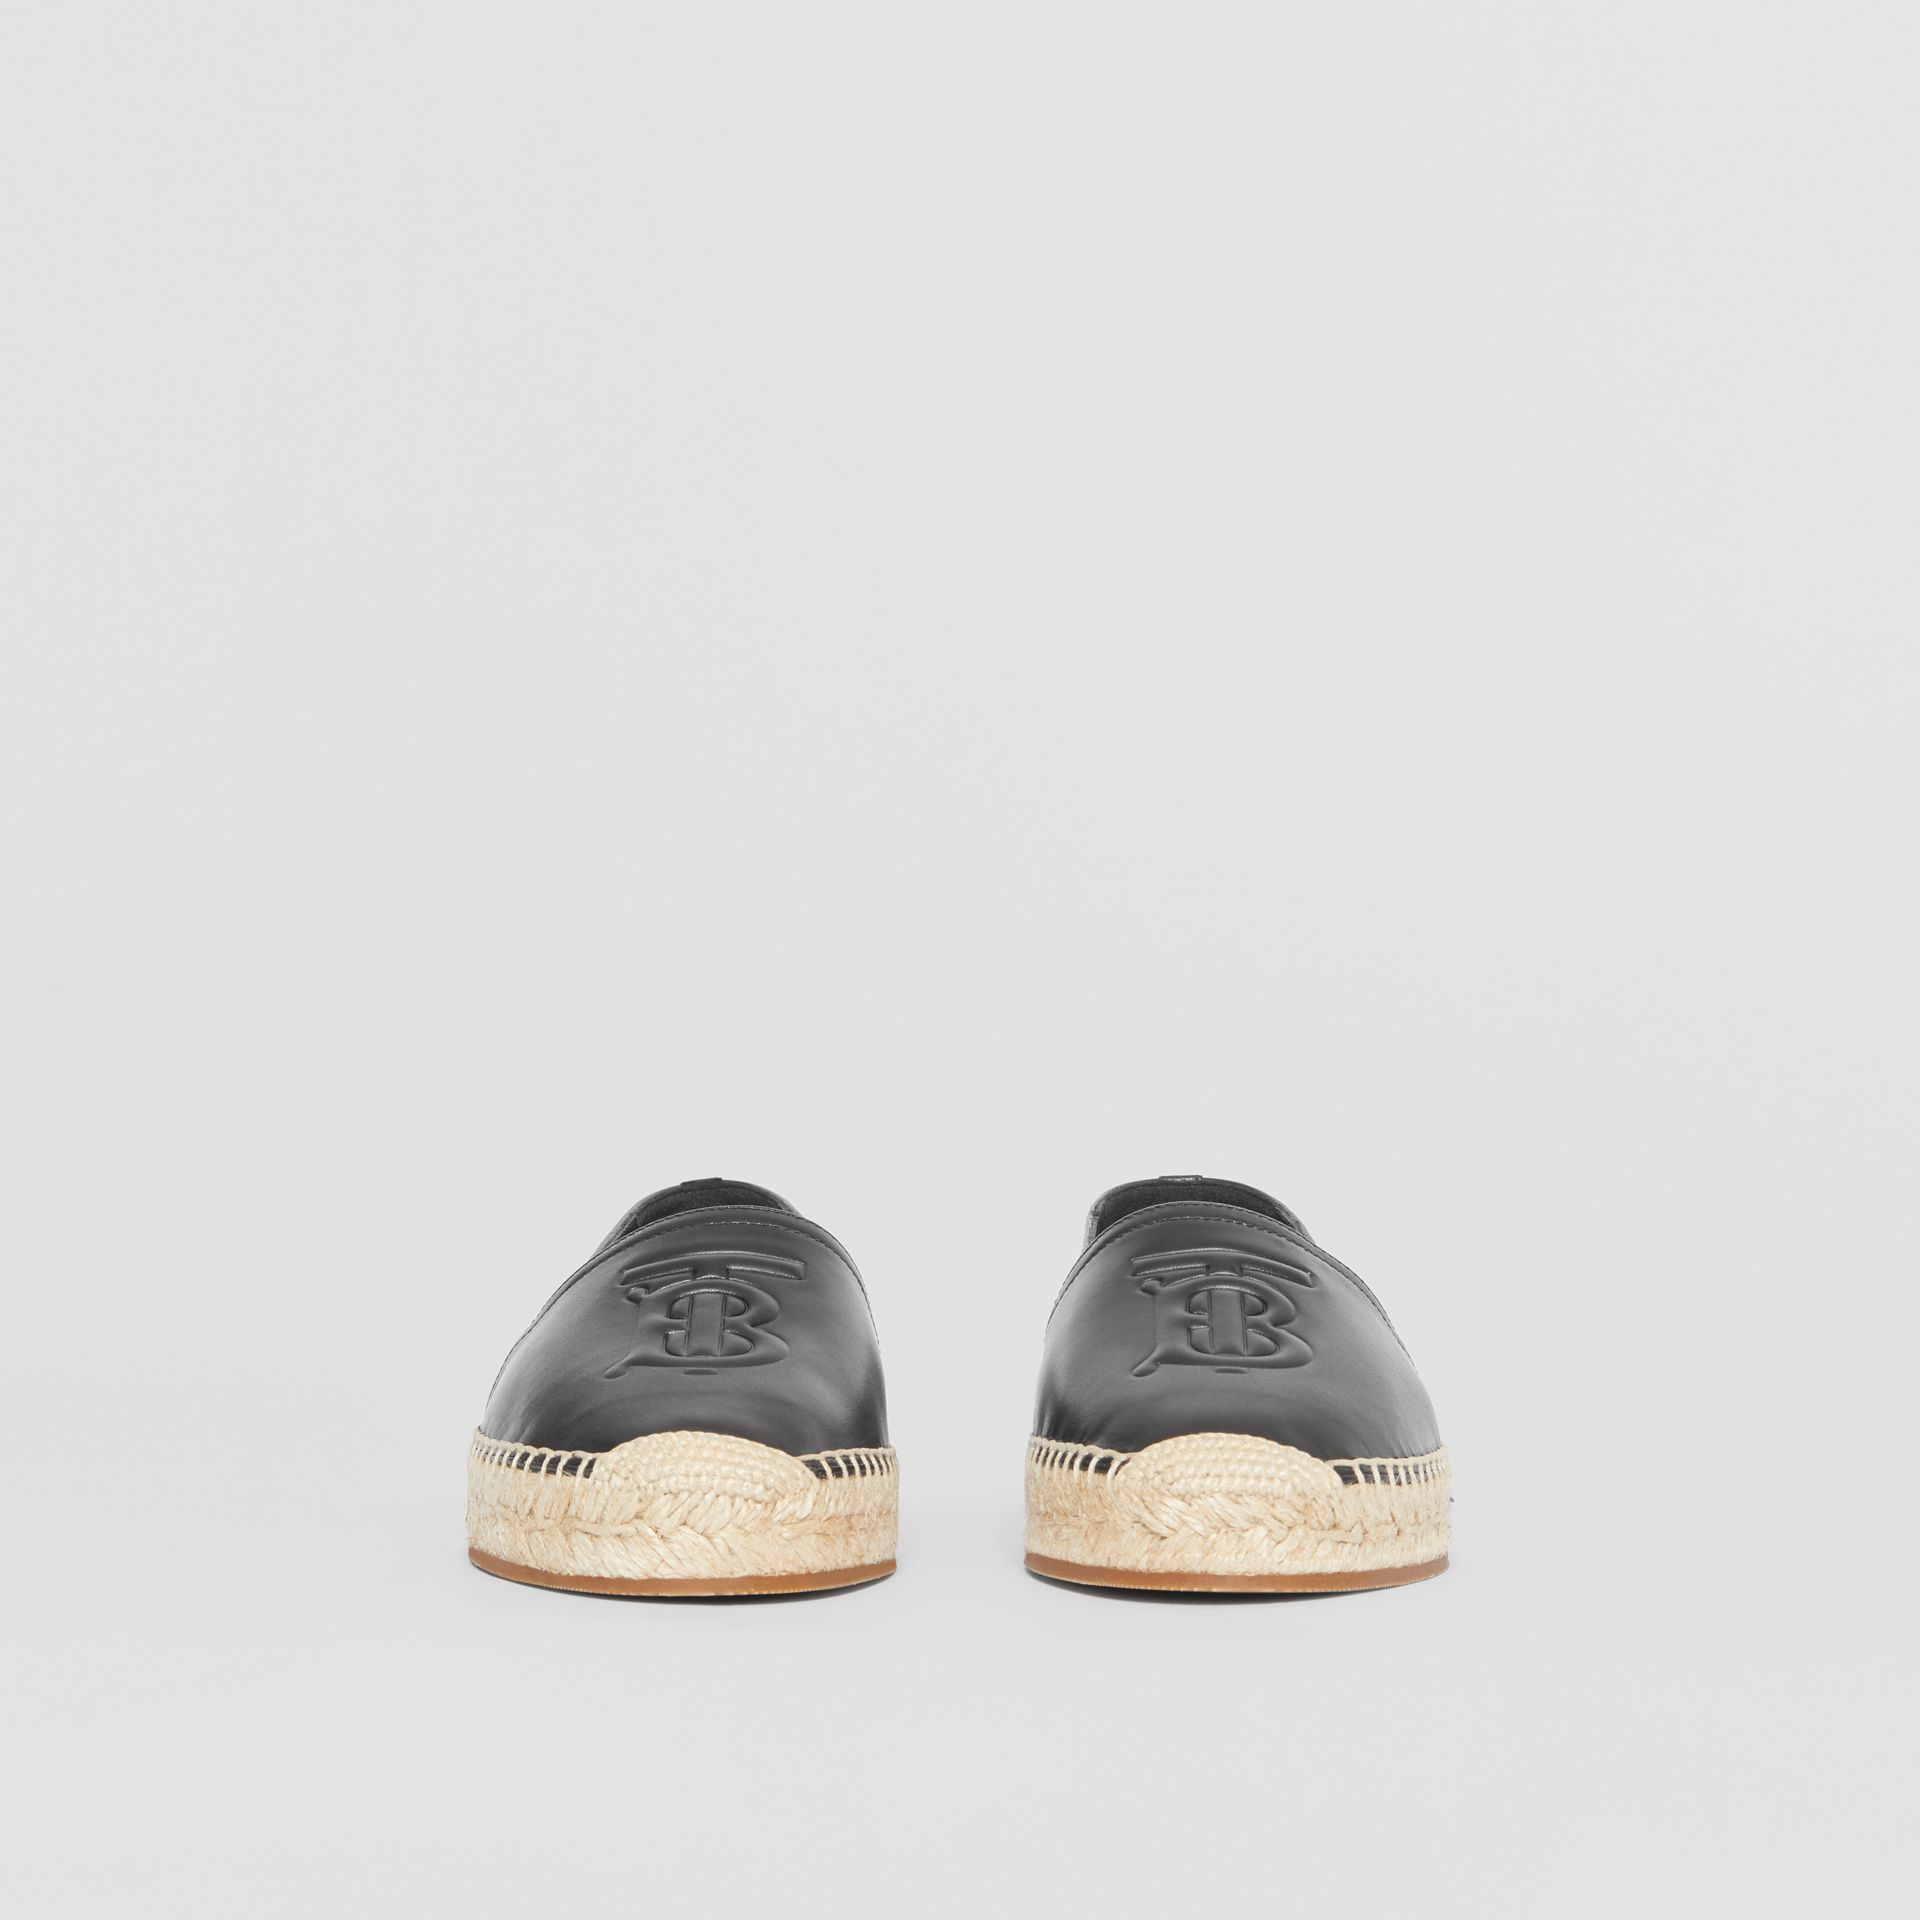 Monogram Motif Leather Espadrilles in Black - Women | Burberry - gallery image 3